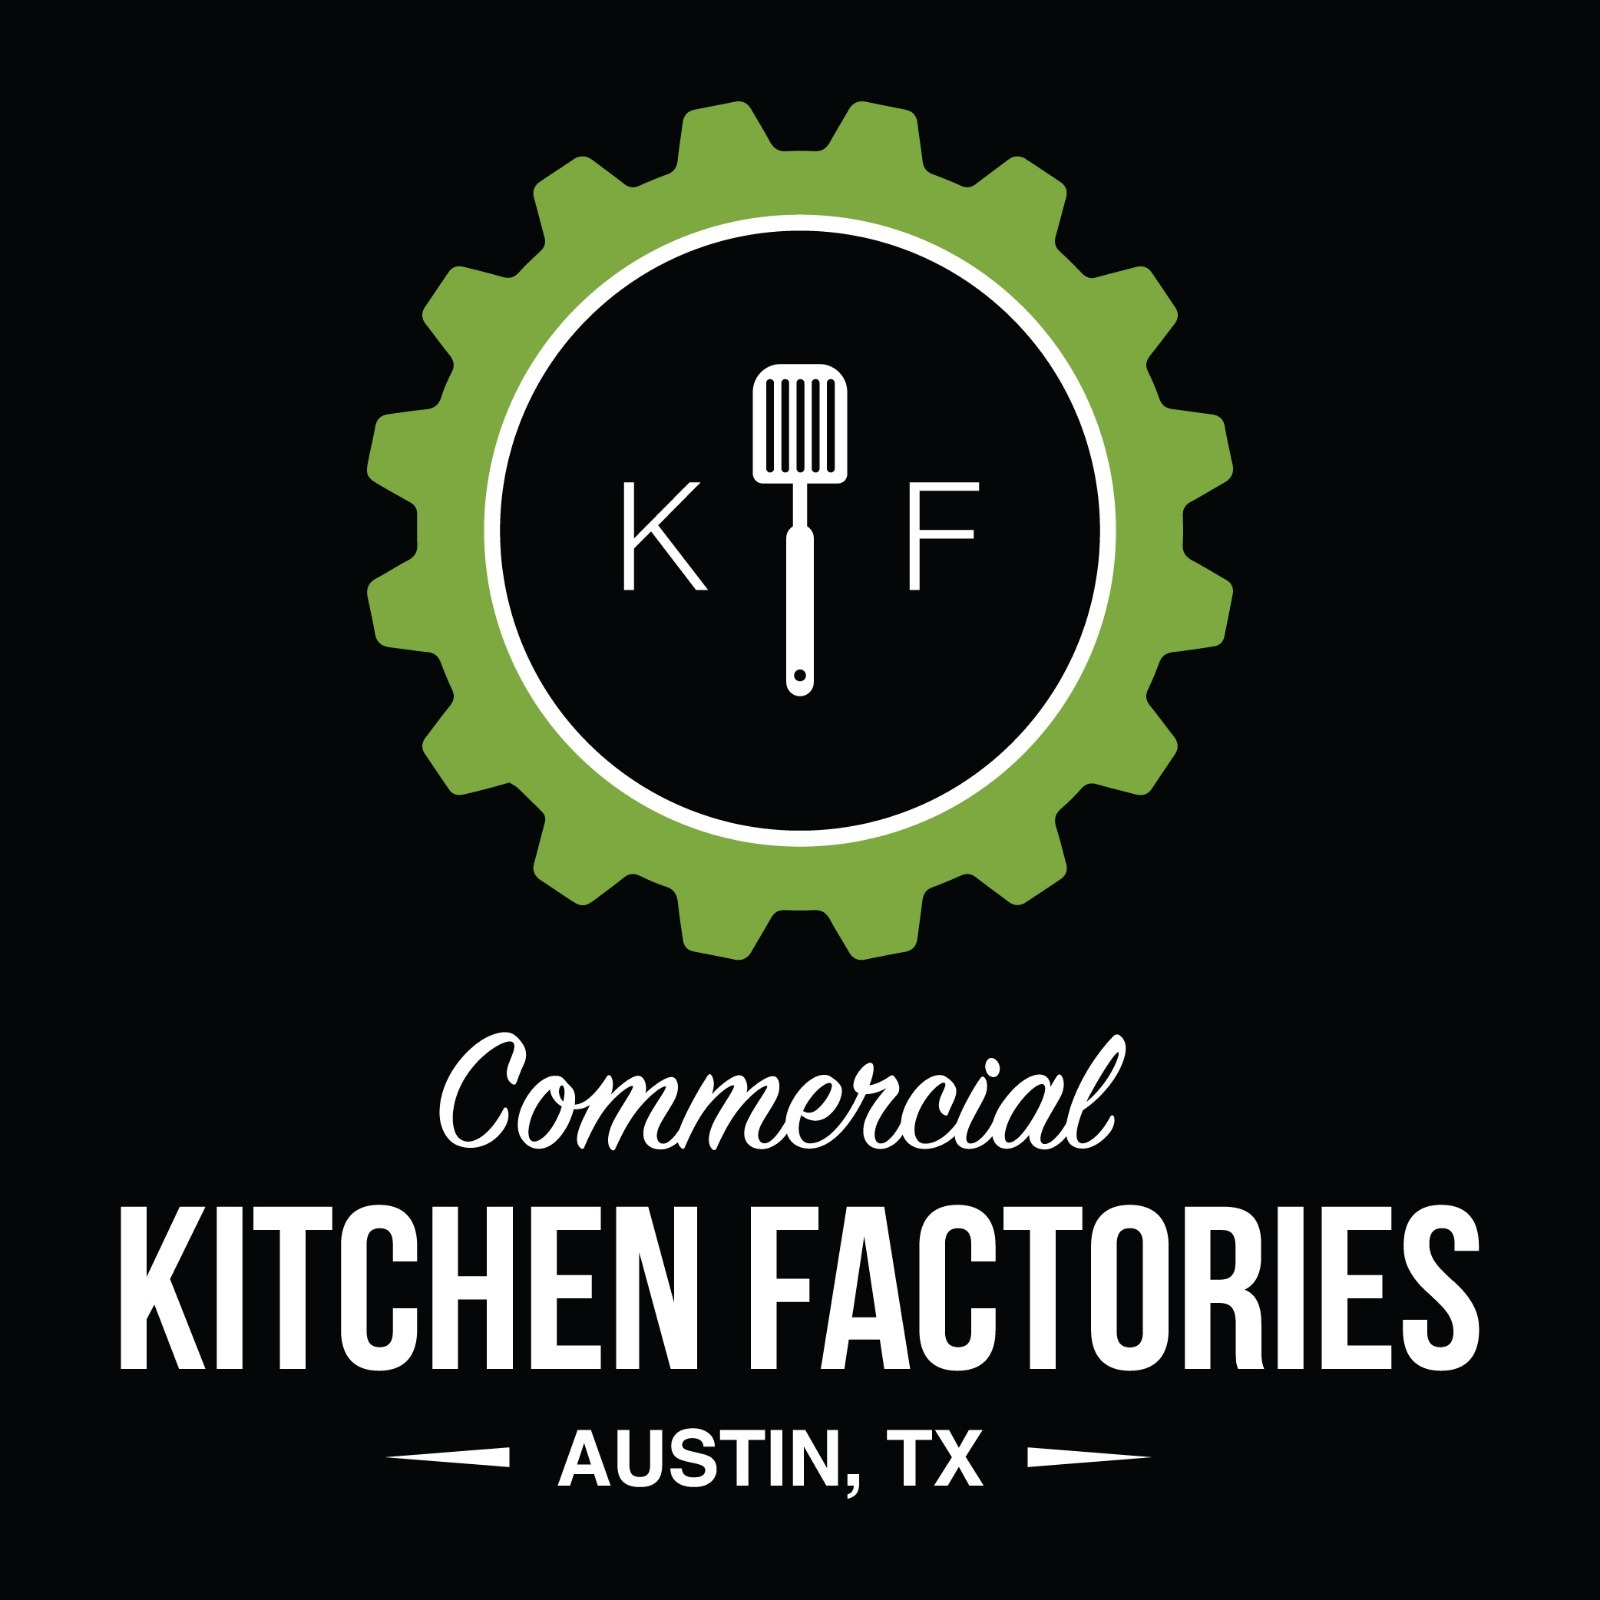 Commercial Kitchen Factories Austin